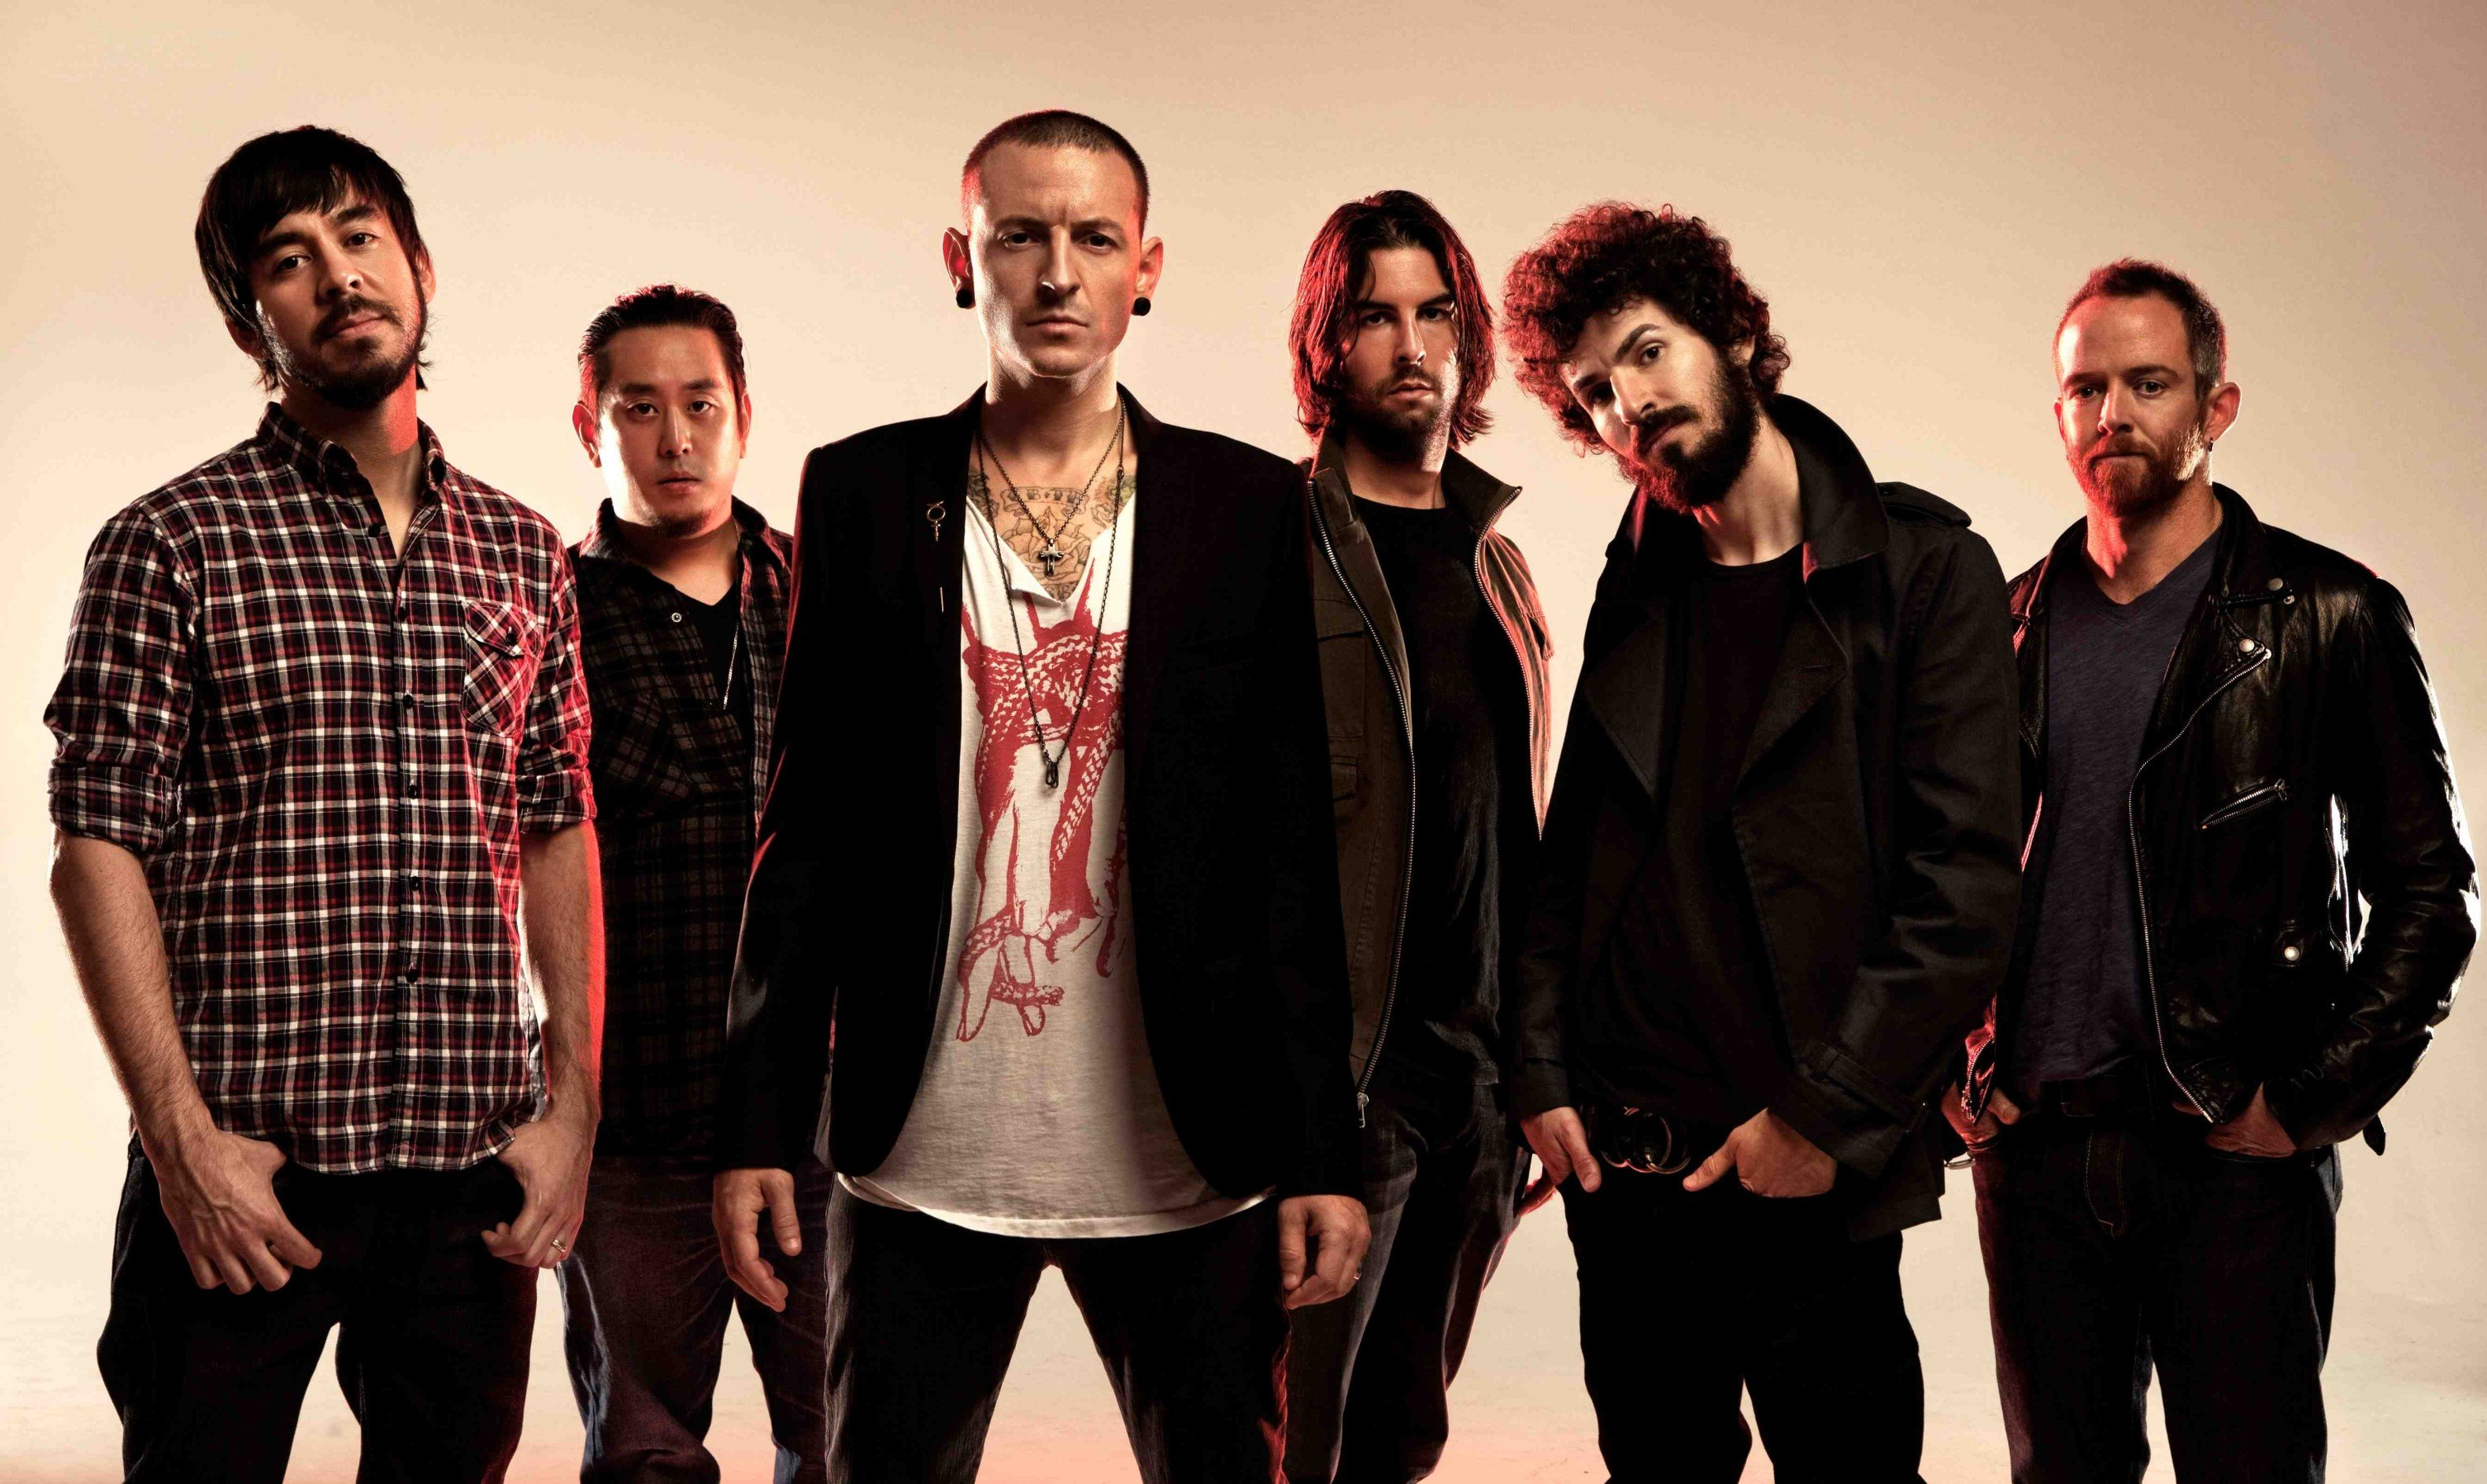 Download Linkin Park - Collection (90 Albums) Mp3 - SoftArchive